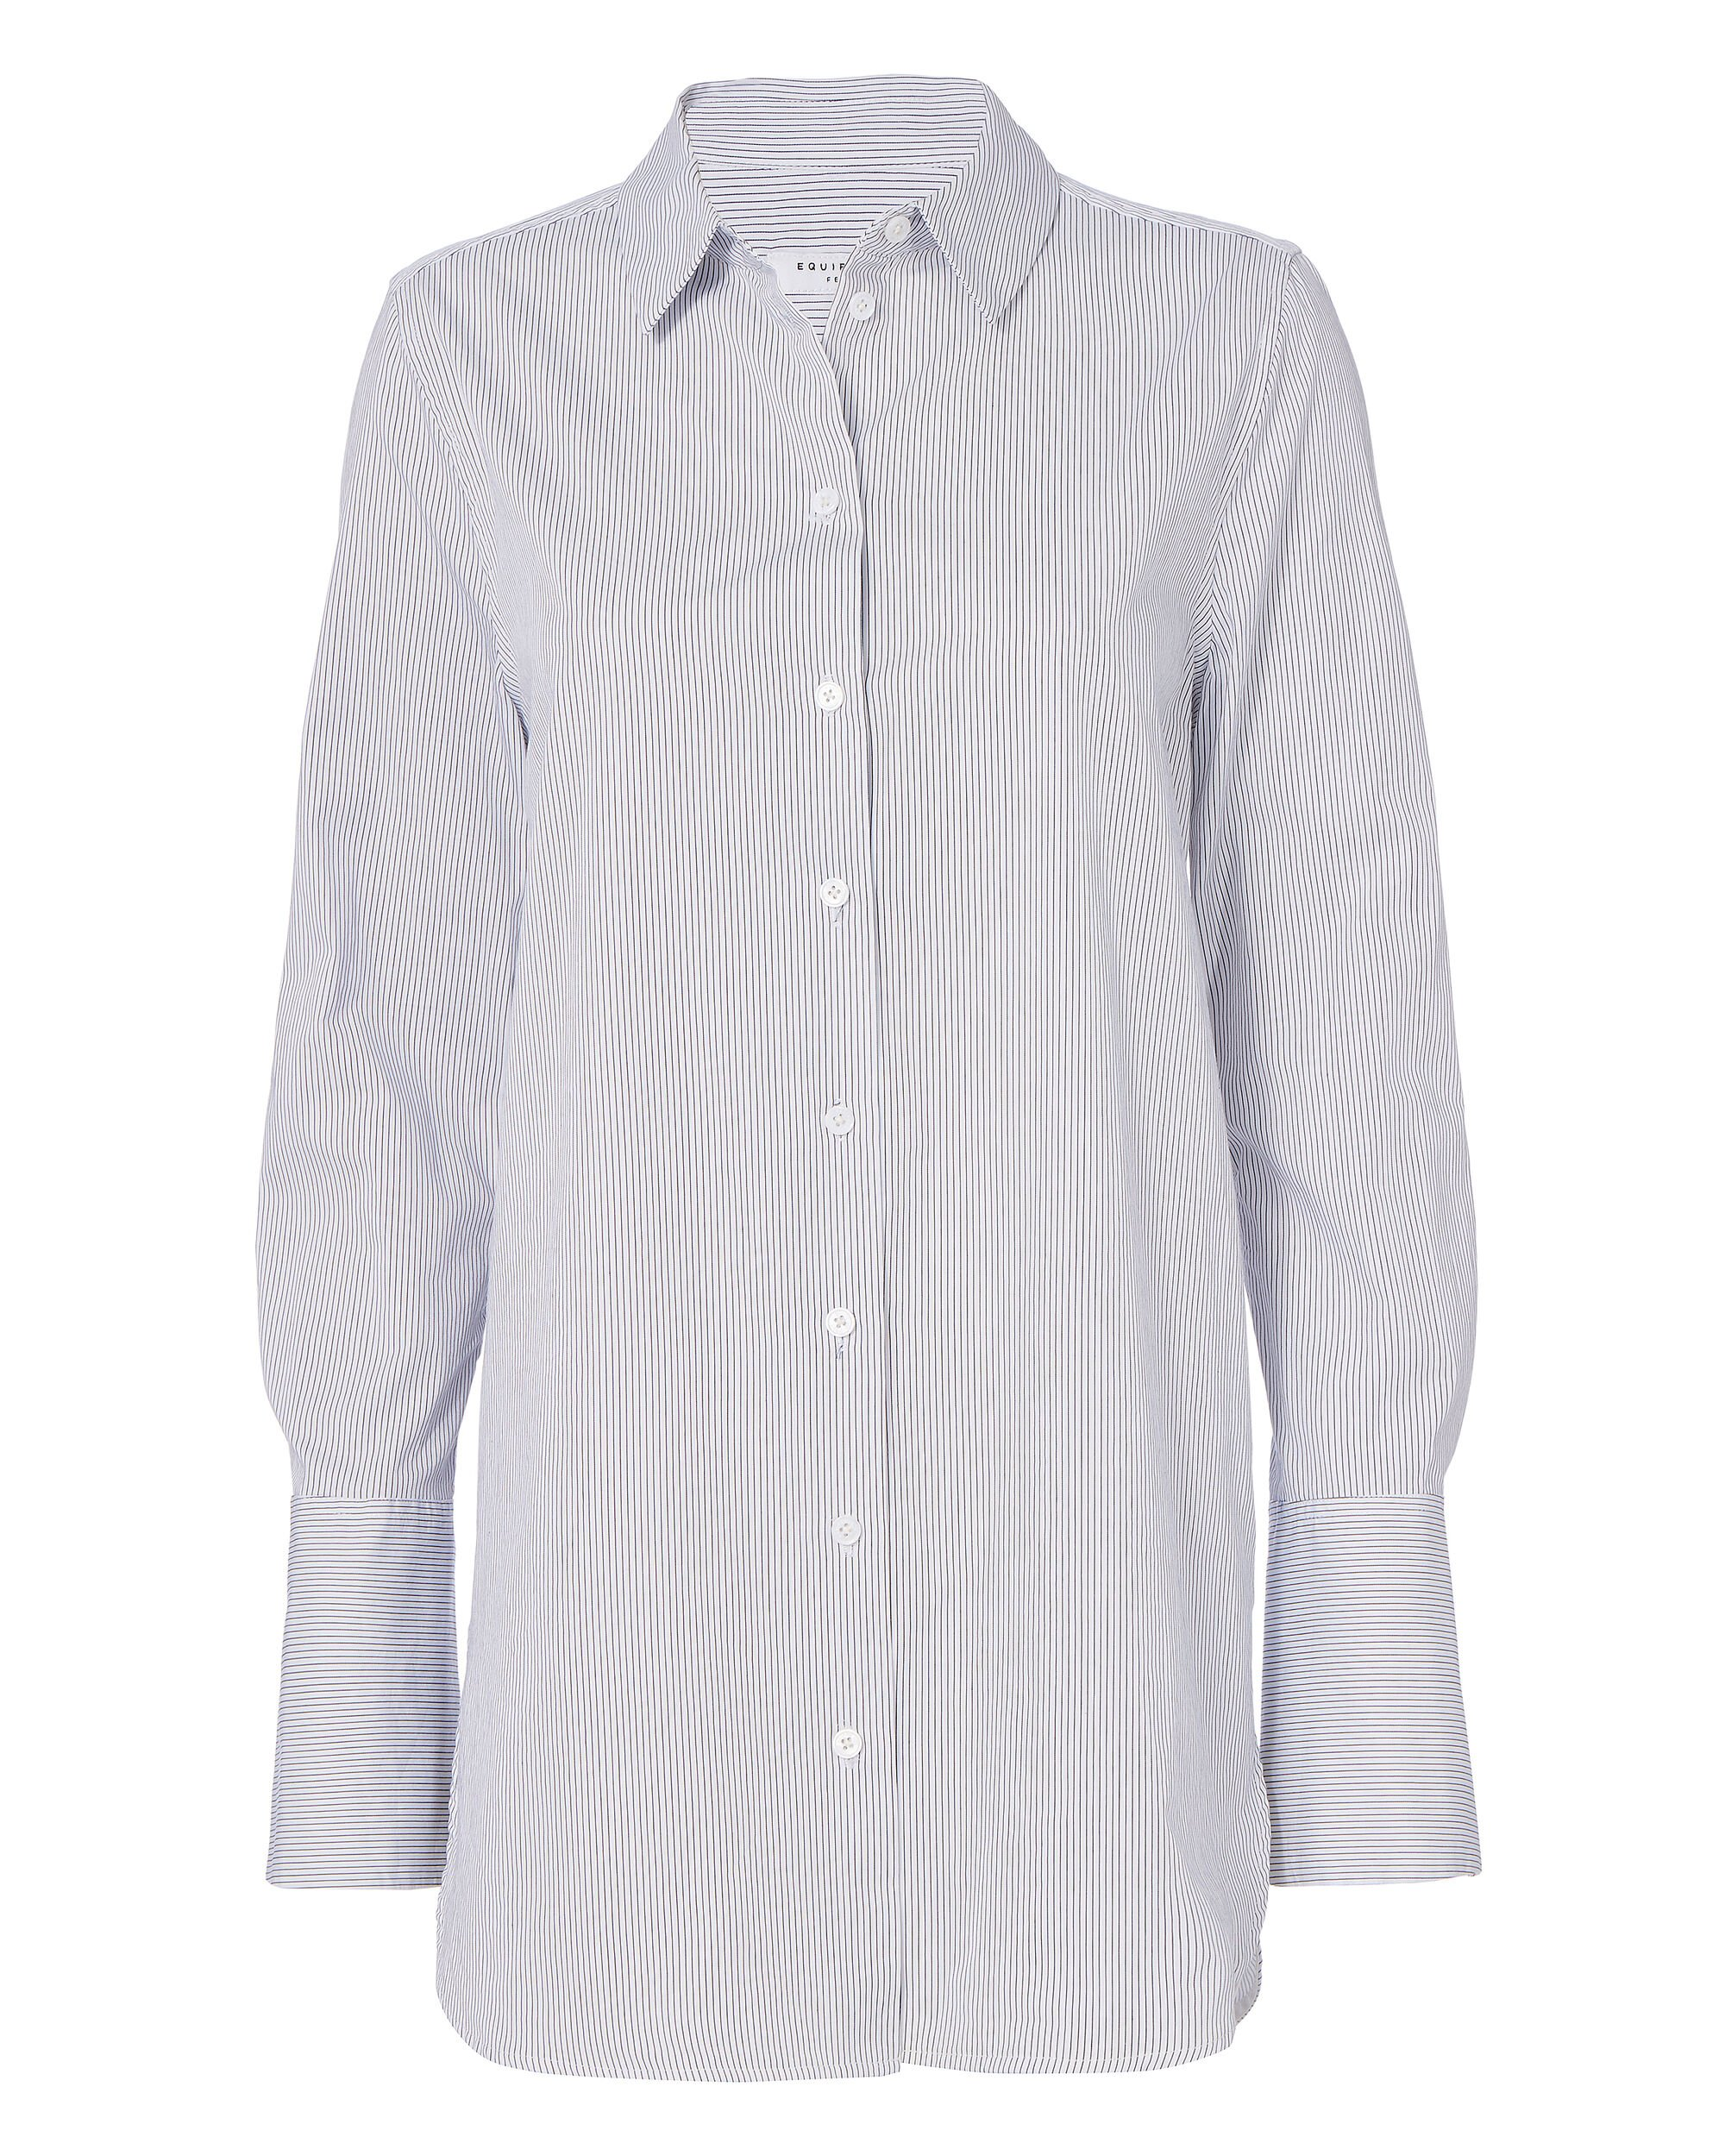 Arlette Striped Button-Down Shirt, PATTERN, hi-res